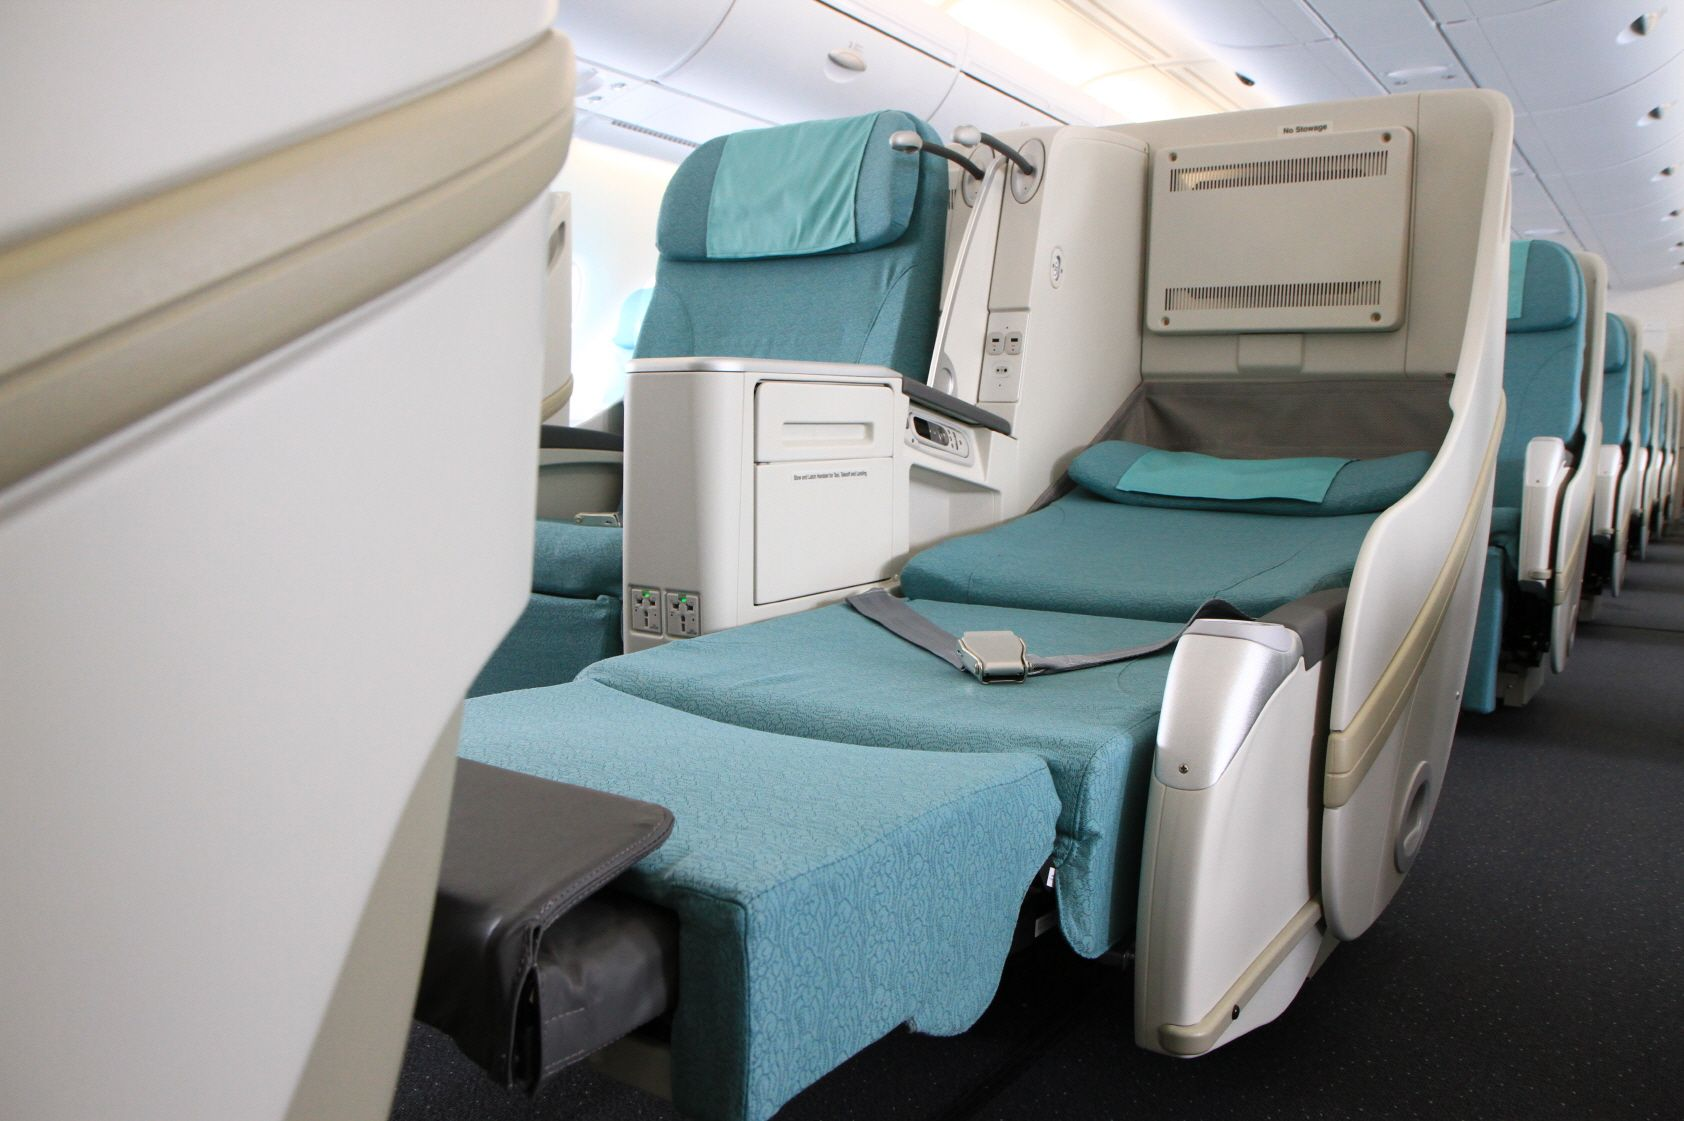 Korean Air prestige seats with privacy compartments for